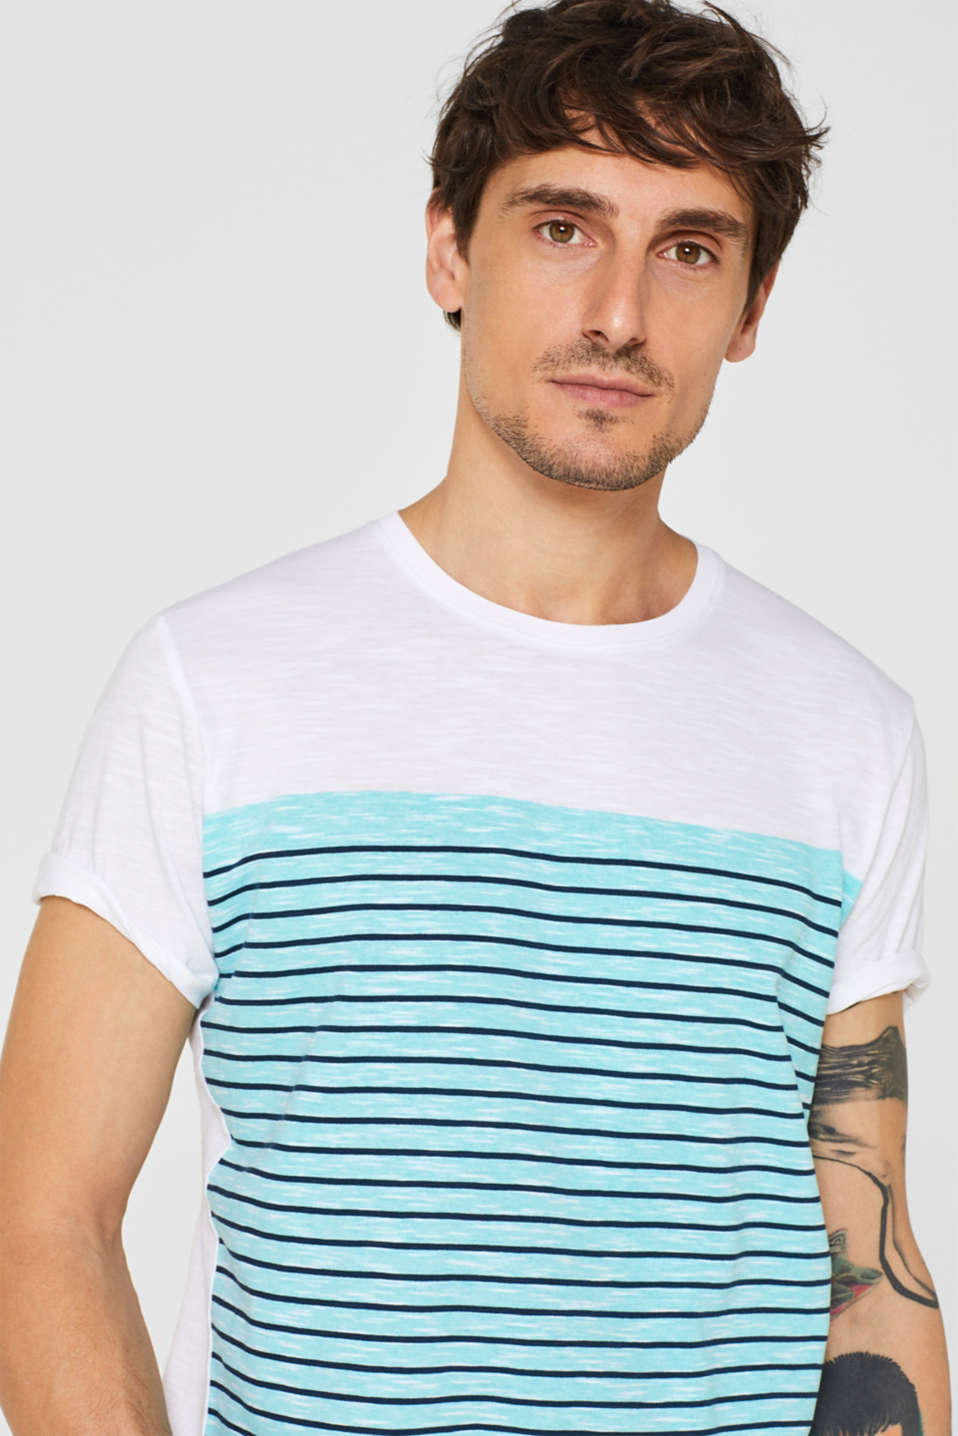 Jersey T-shirt with stripes, 100% cotton, LIGHT AQUA GREEN, detail image number 1